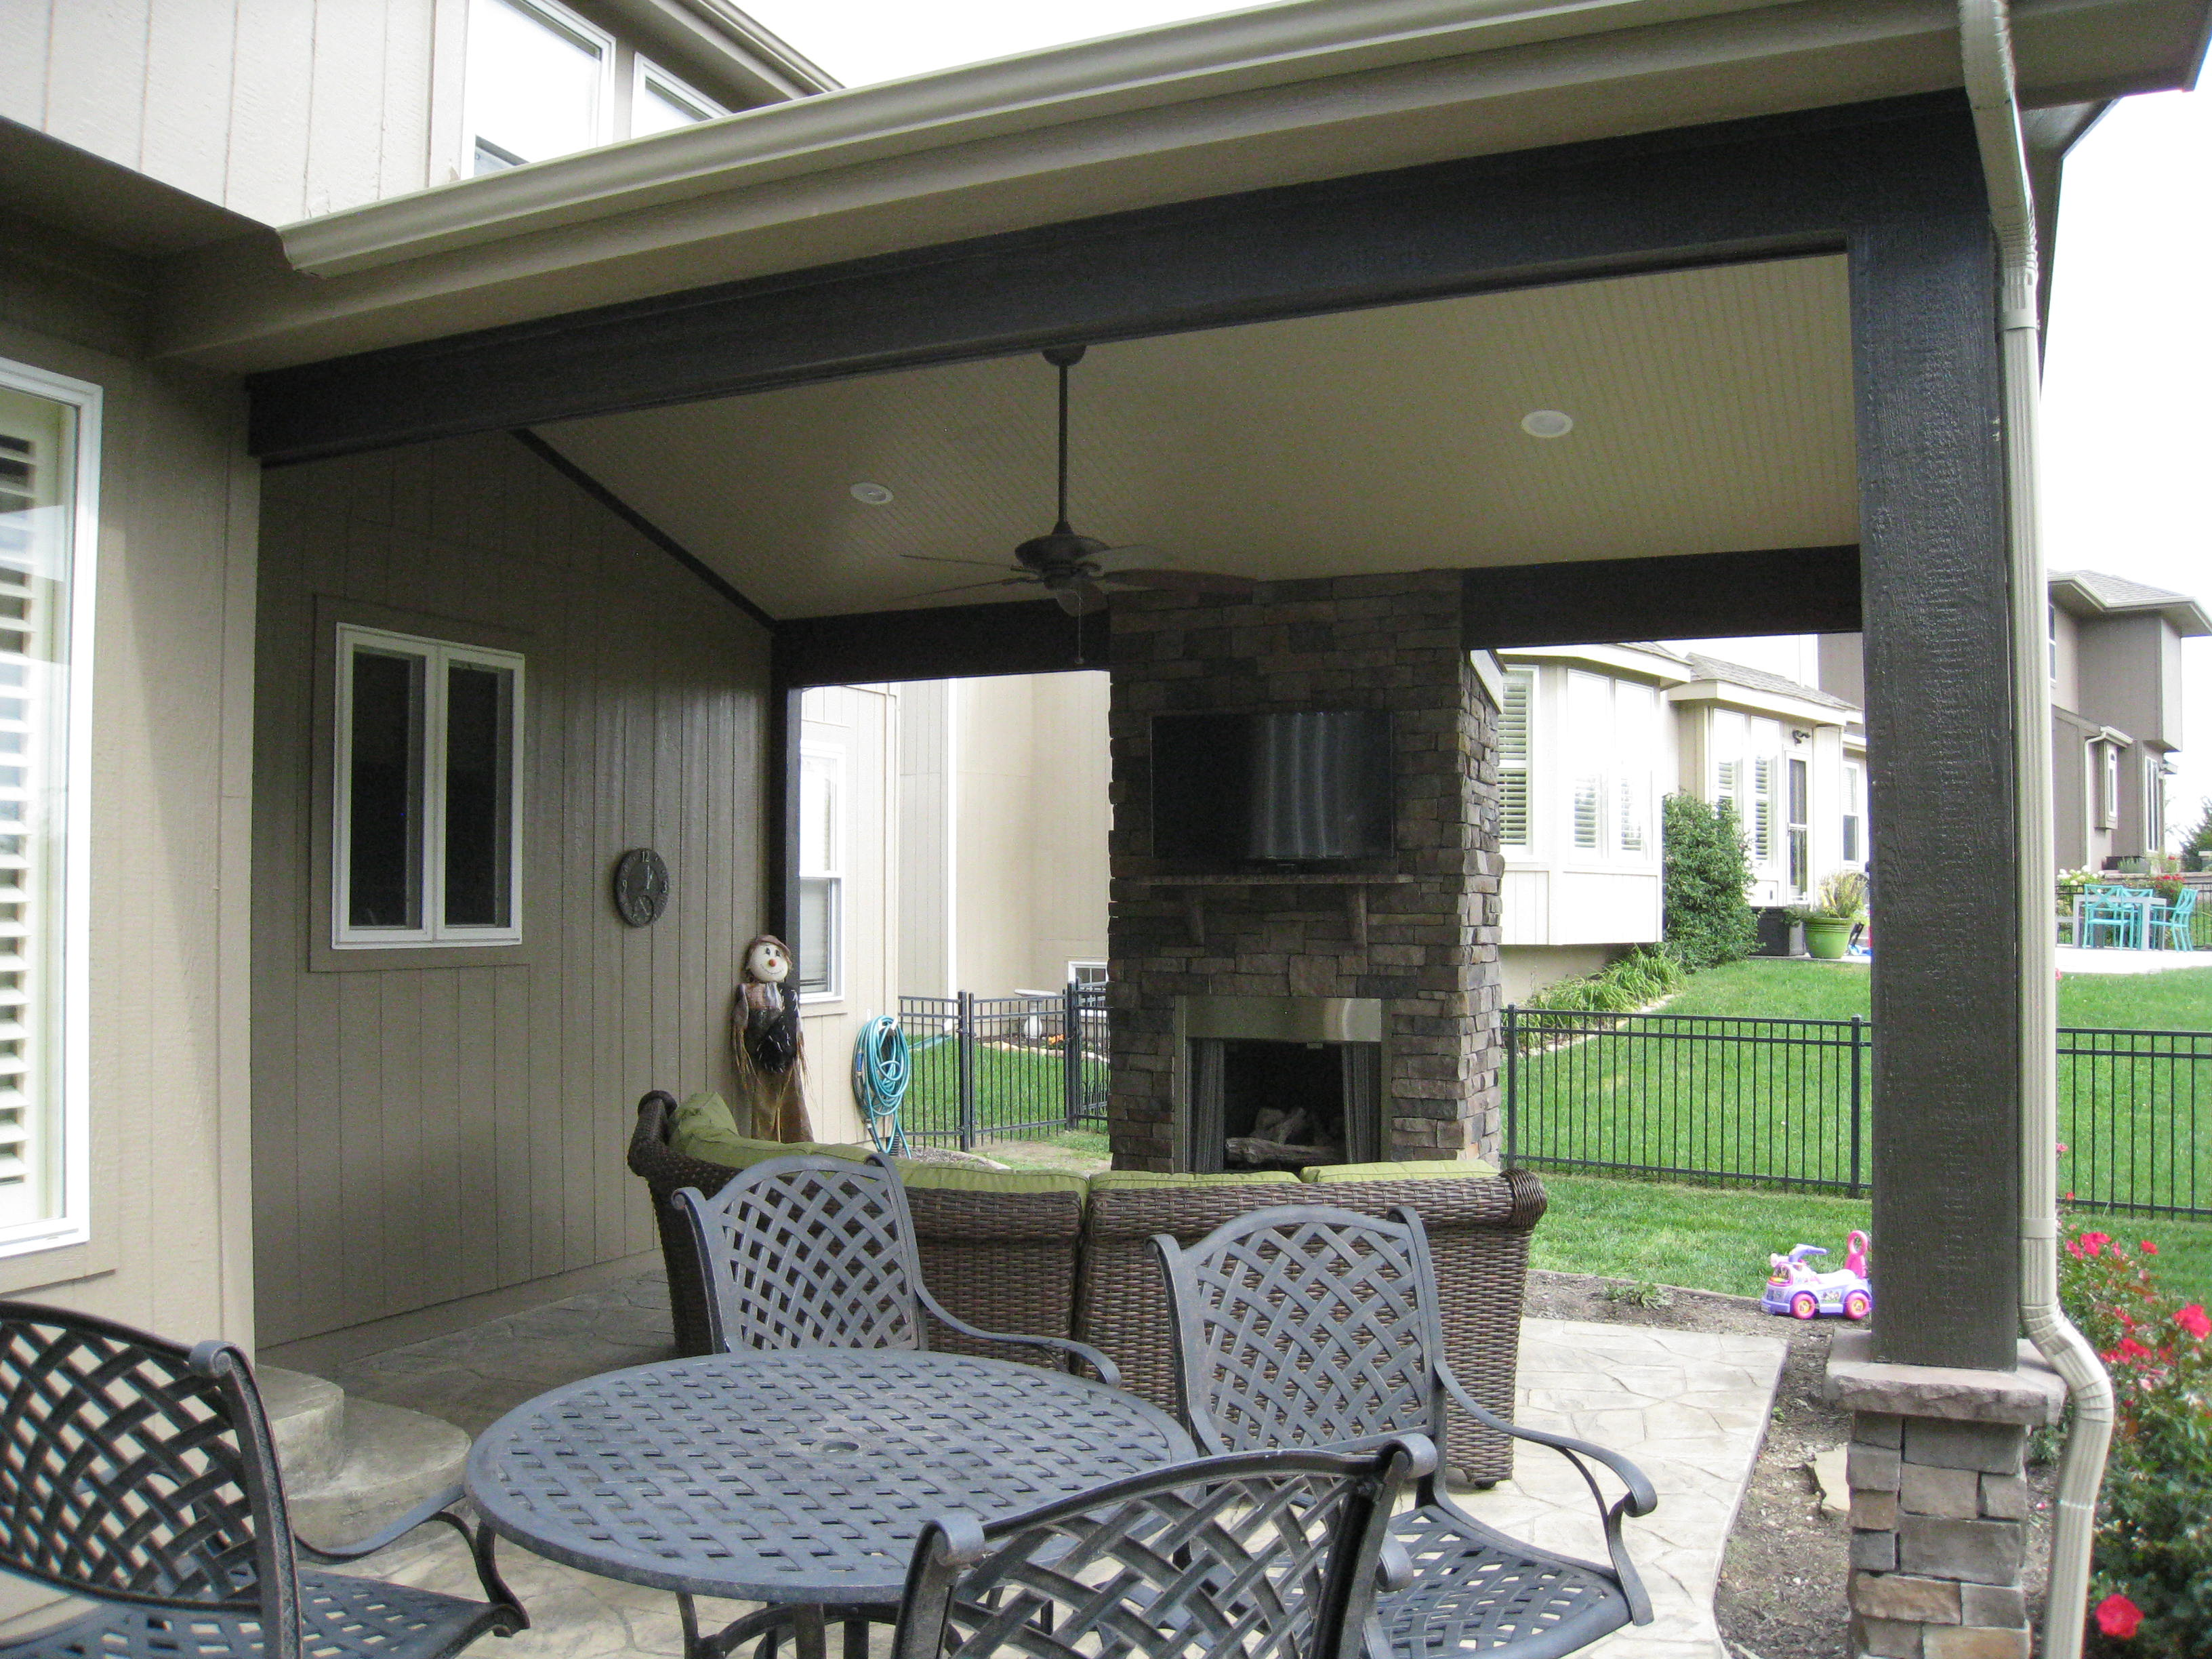 it to kits sale an fireplace fireplaces cost for much of how into outdoor integrate patio would my under covered